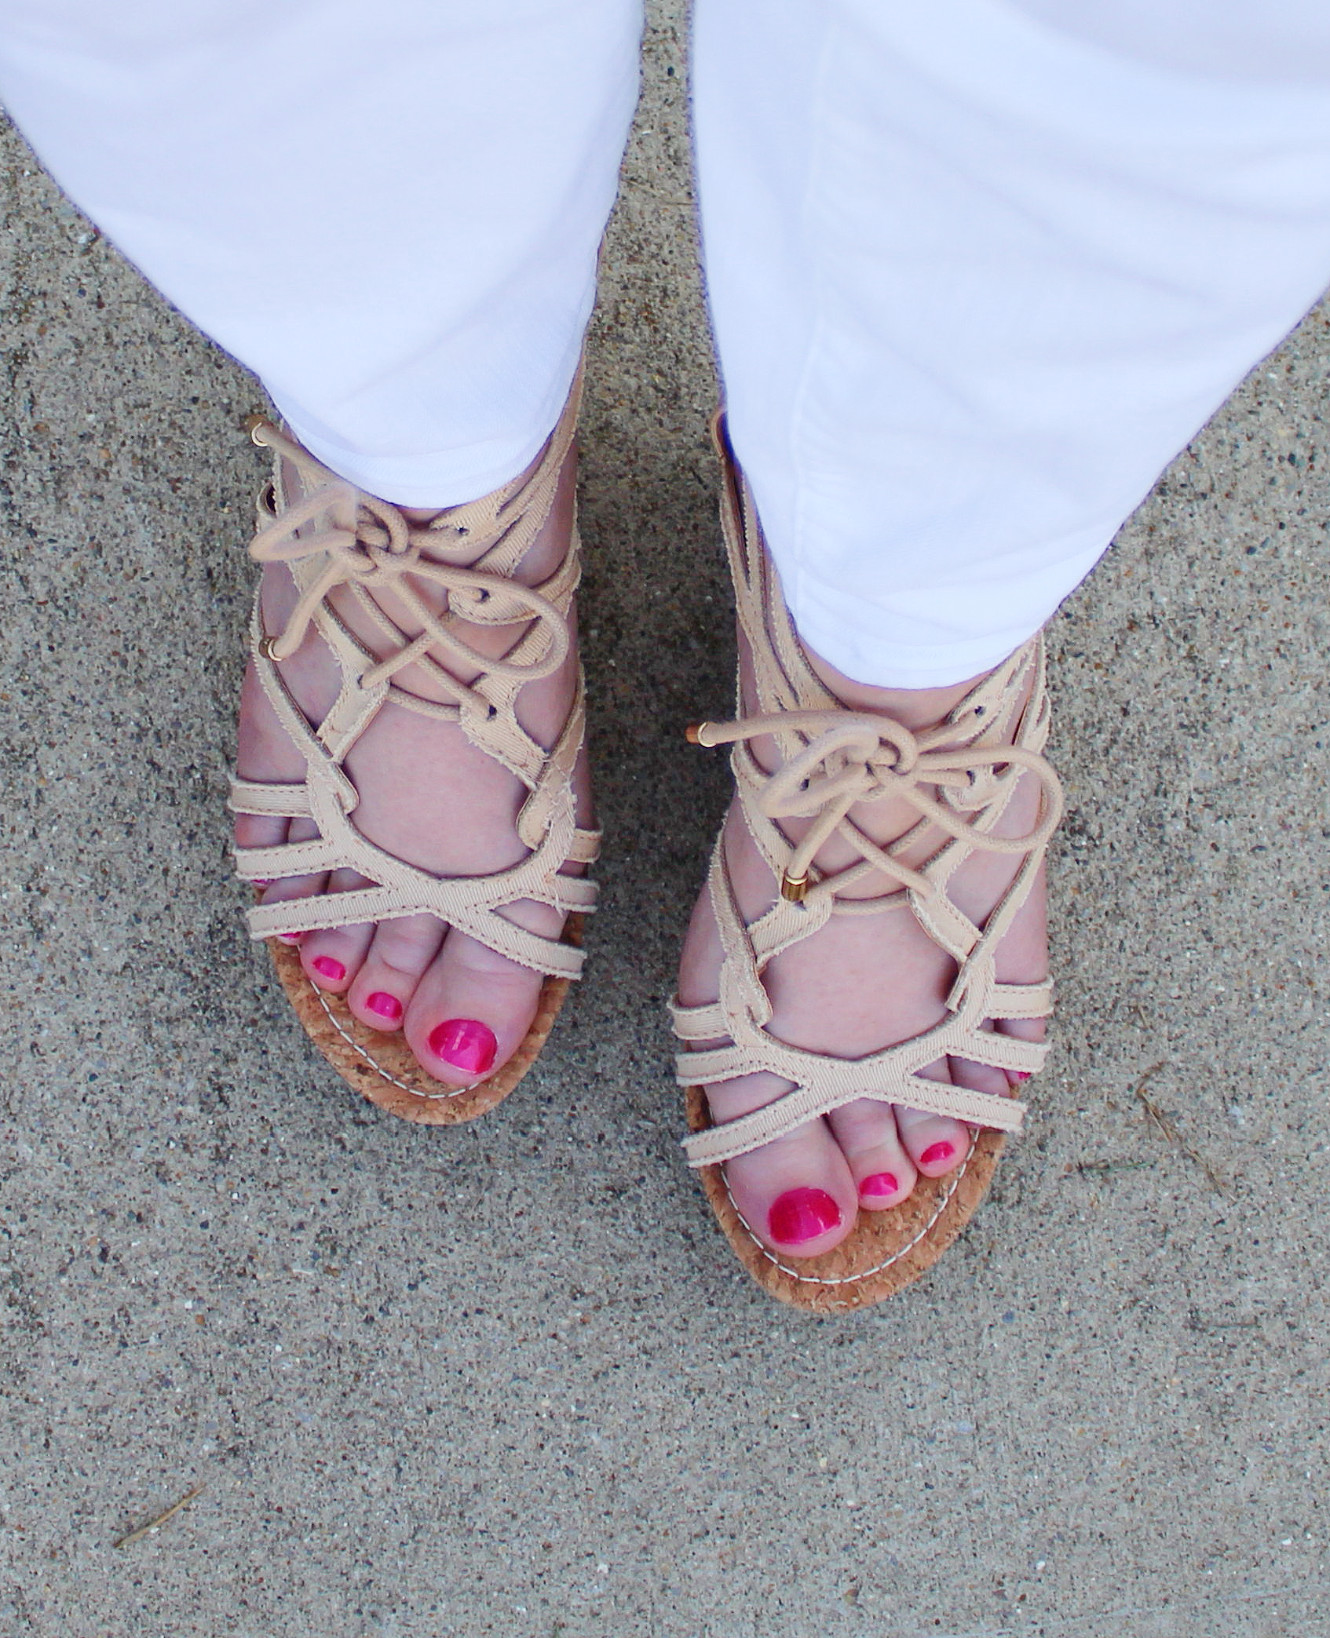 Polished Toe Nails And Sandals